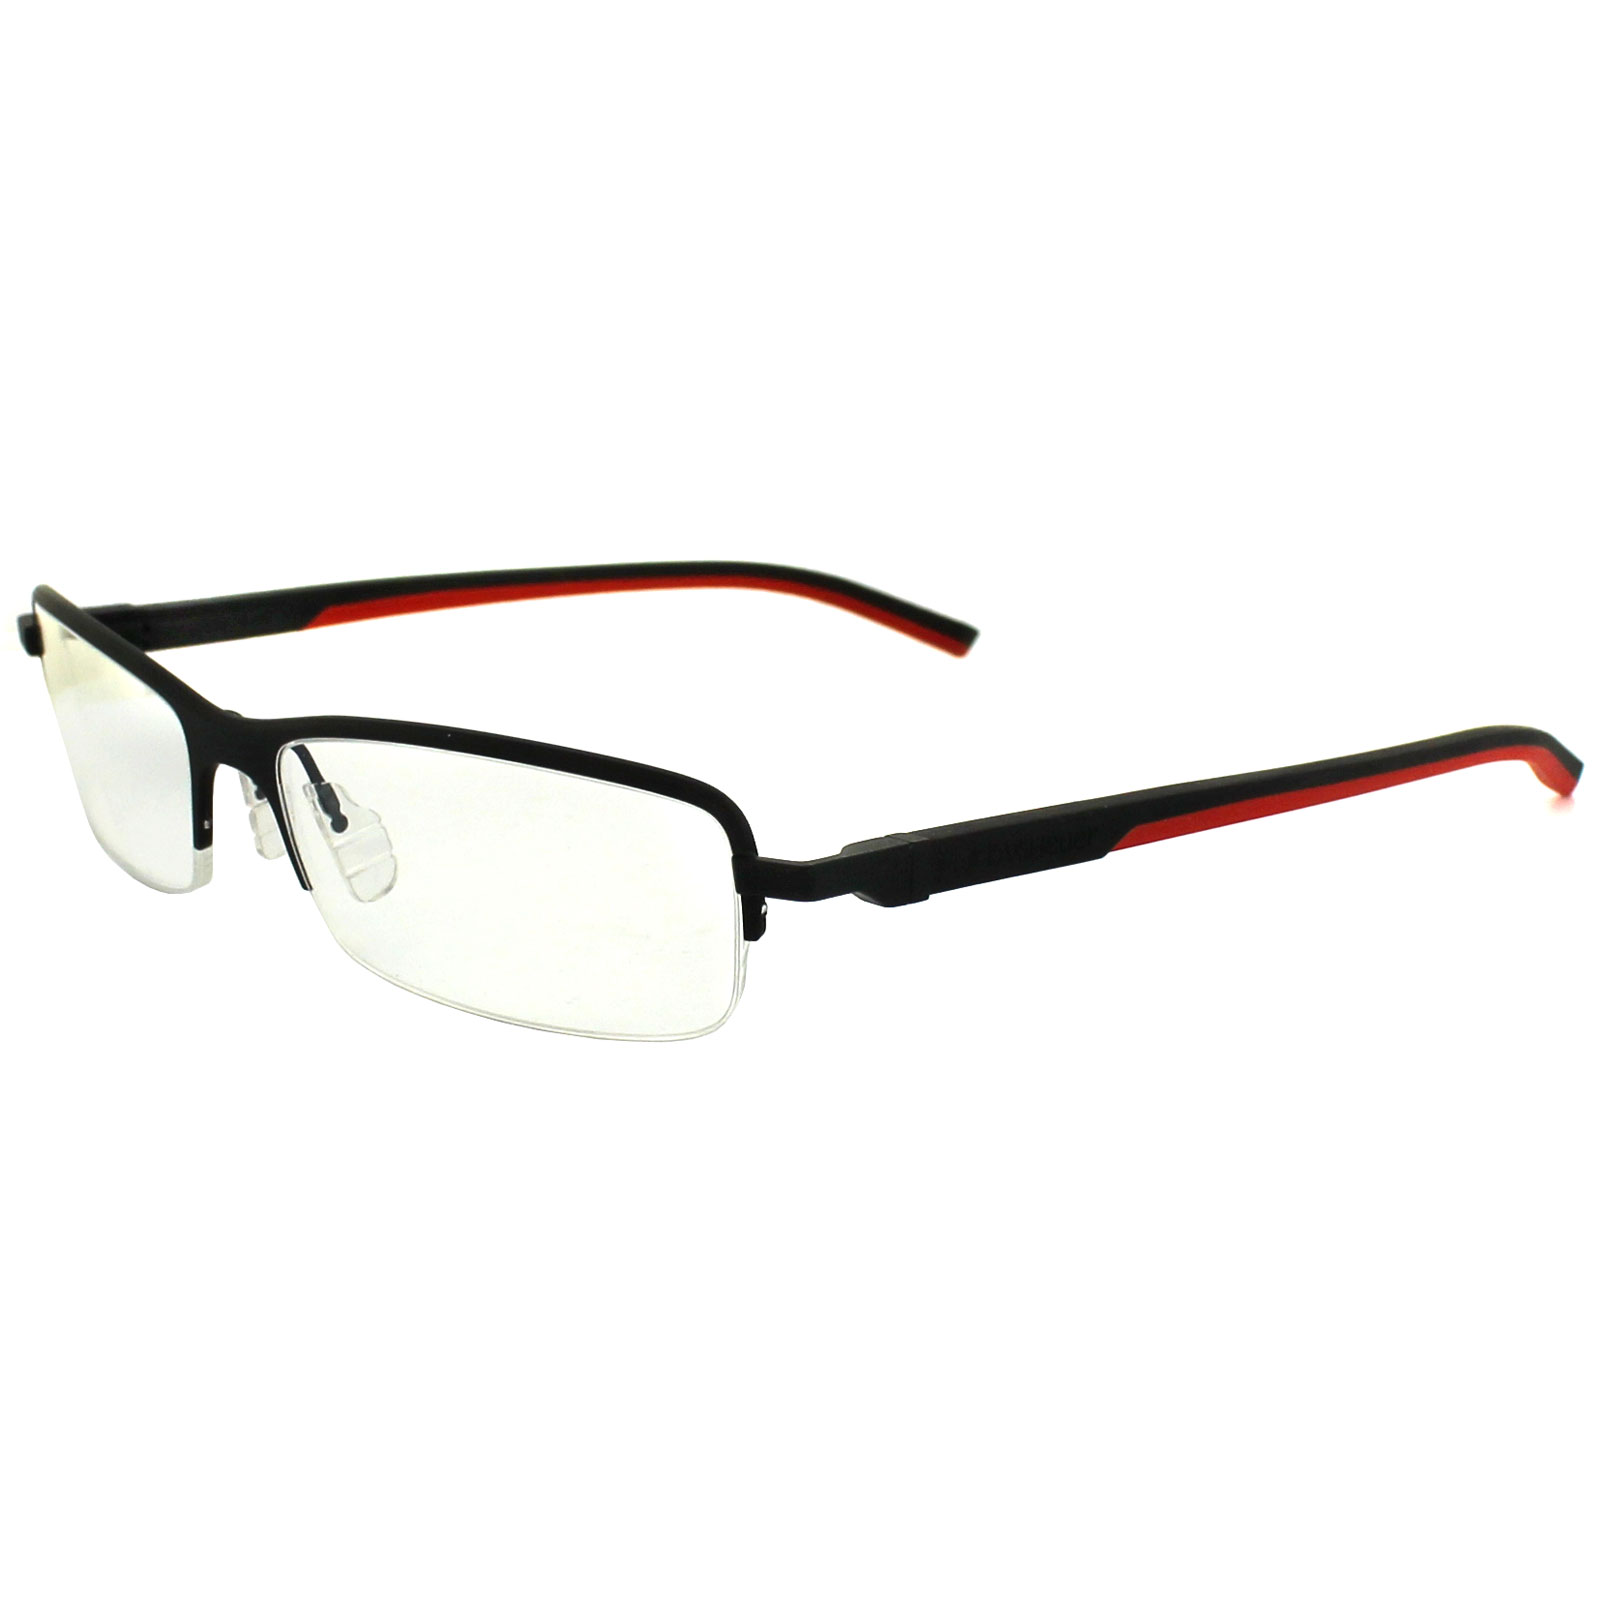 Cheap Tag Heuer Glasses Frames Automatic 0824 012 Matt Black & Red ...